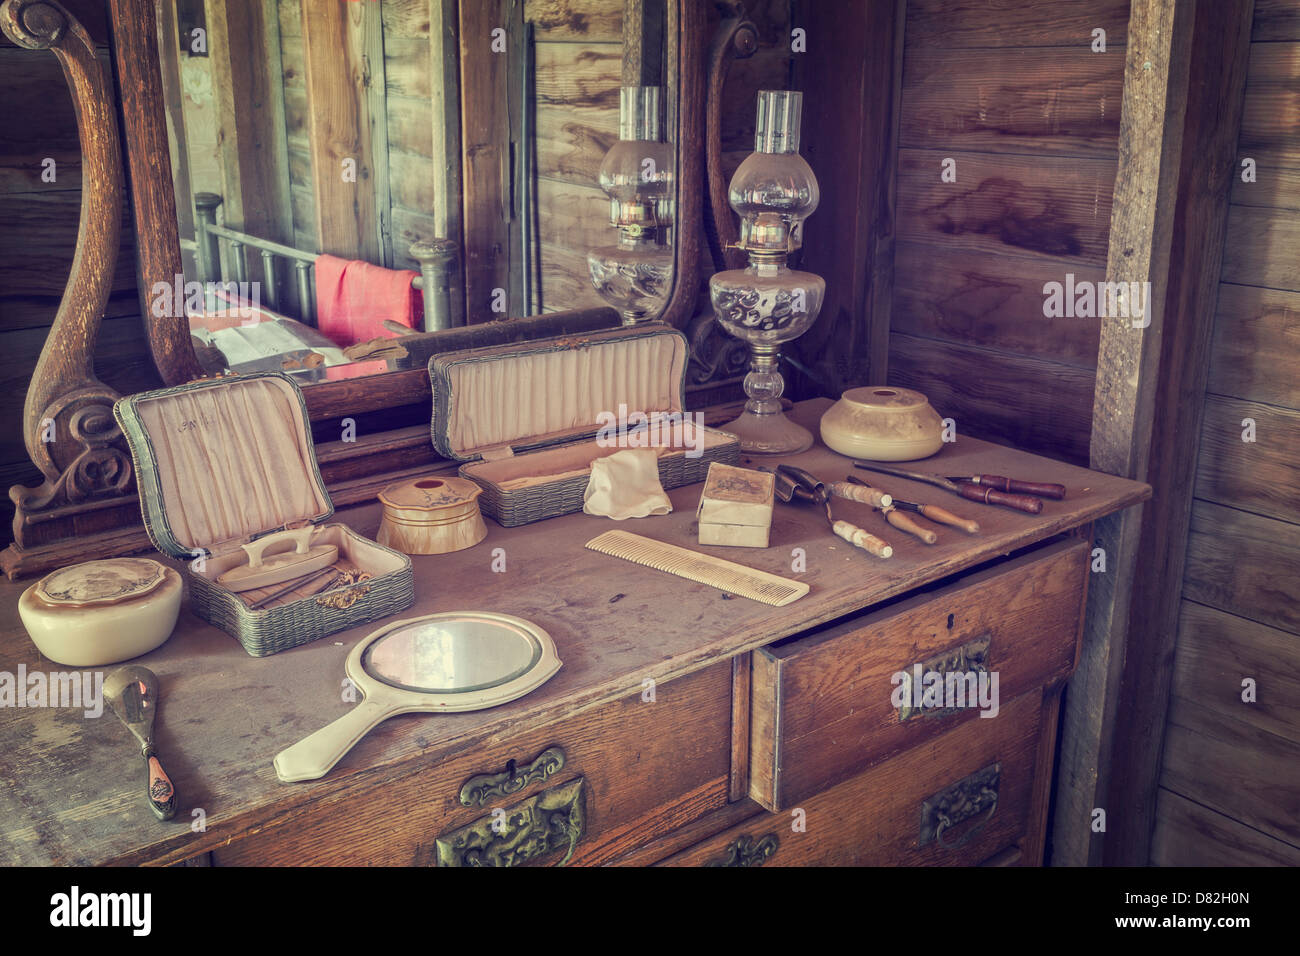 Woman's dresser and vanity in western style ghost town, Dobby's Frontier Town, Alliance, Nebraska - Stock Image